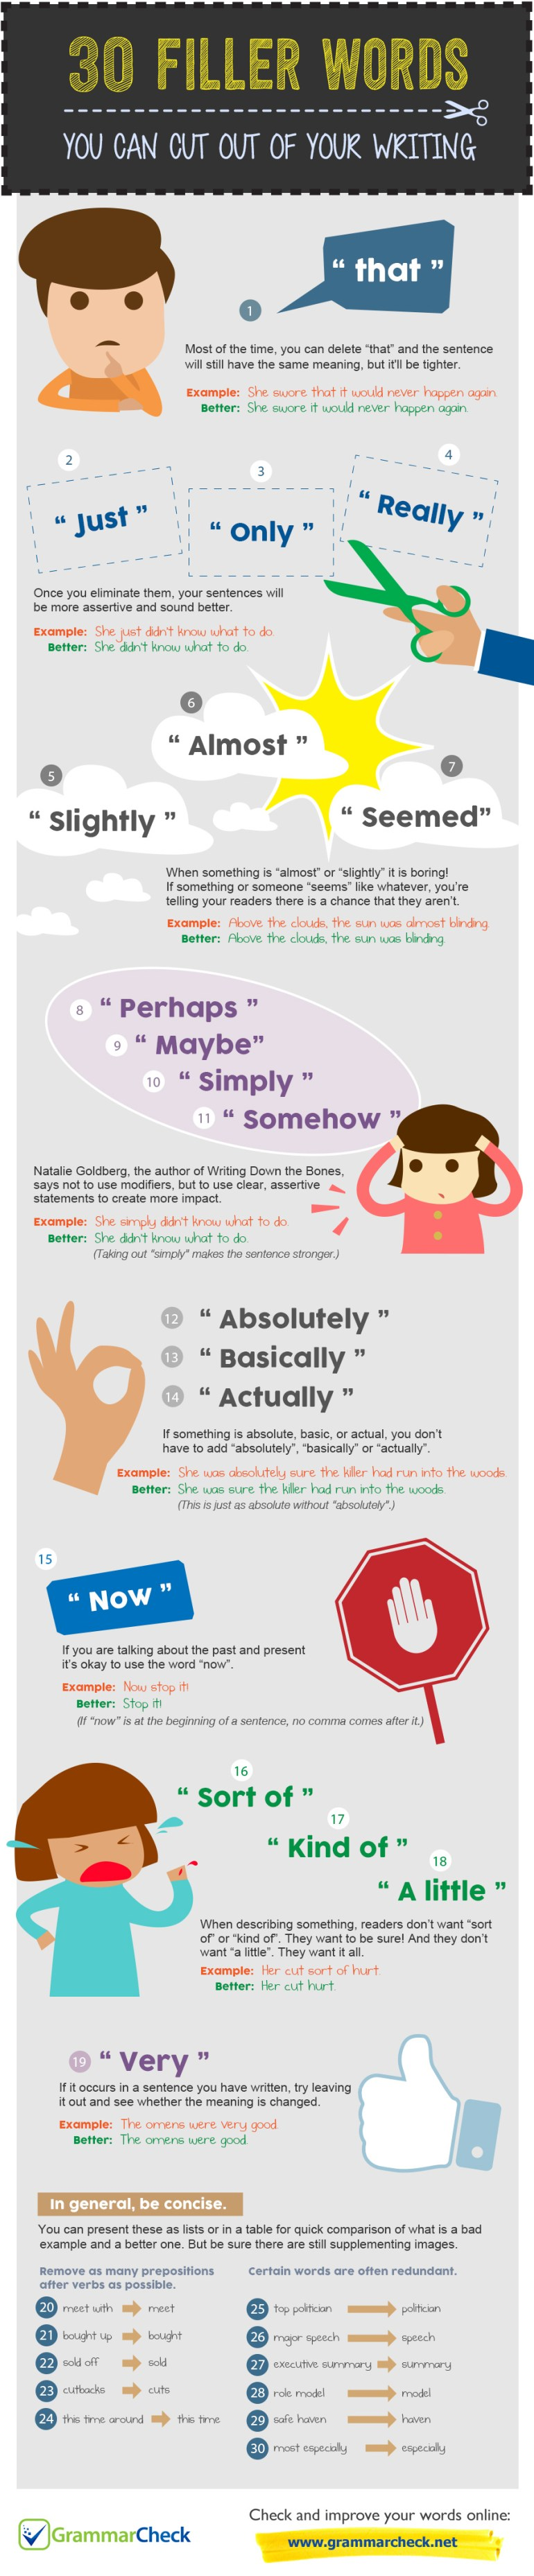 30 Filler Words You Can Cut Out of Your Writing (Infographic)